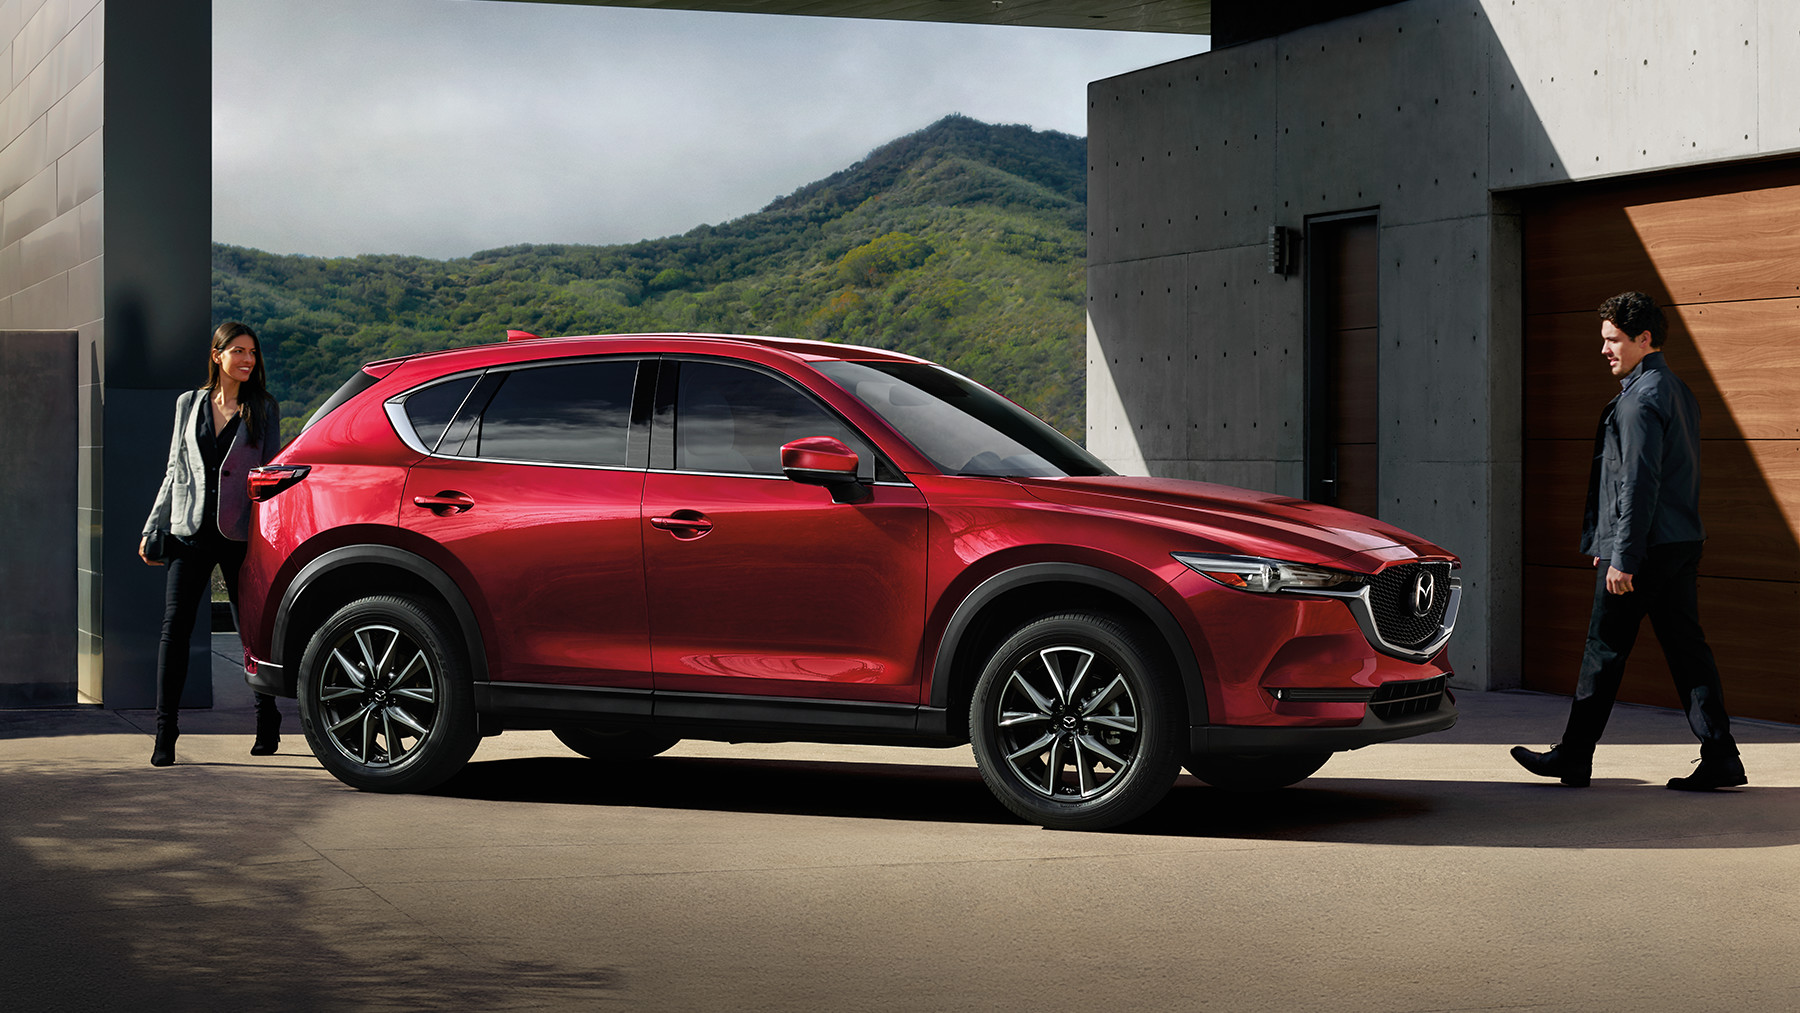 1800x1013 - Mazda CX-5 Wallpapers 32